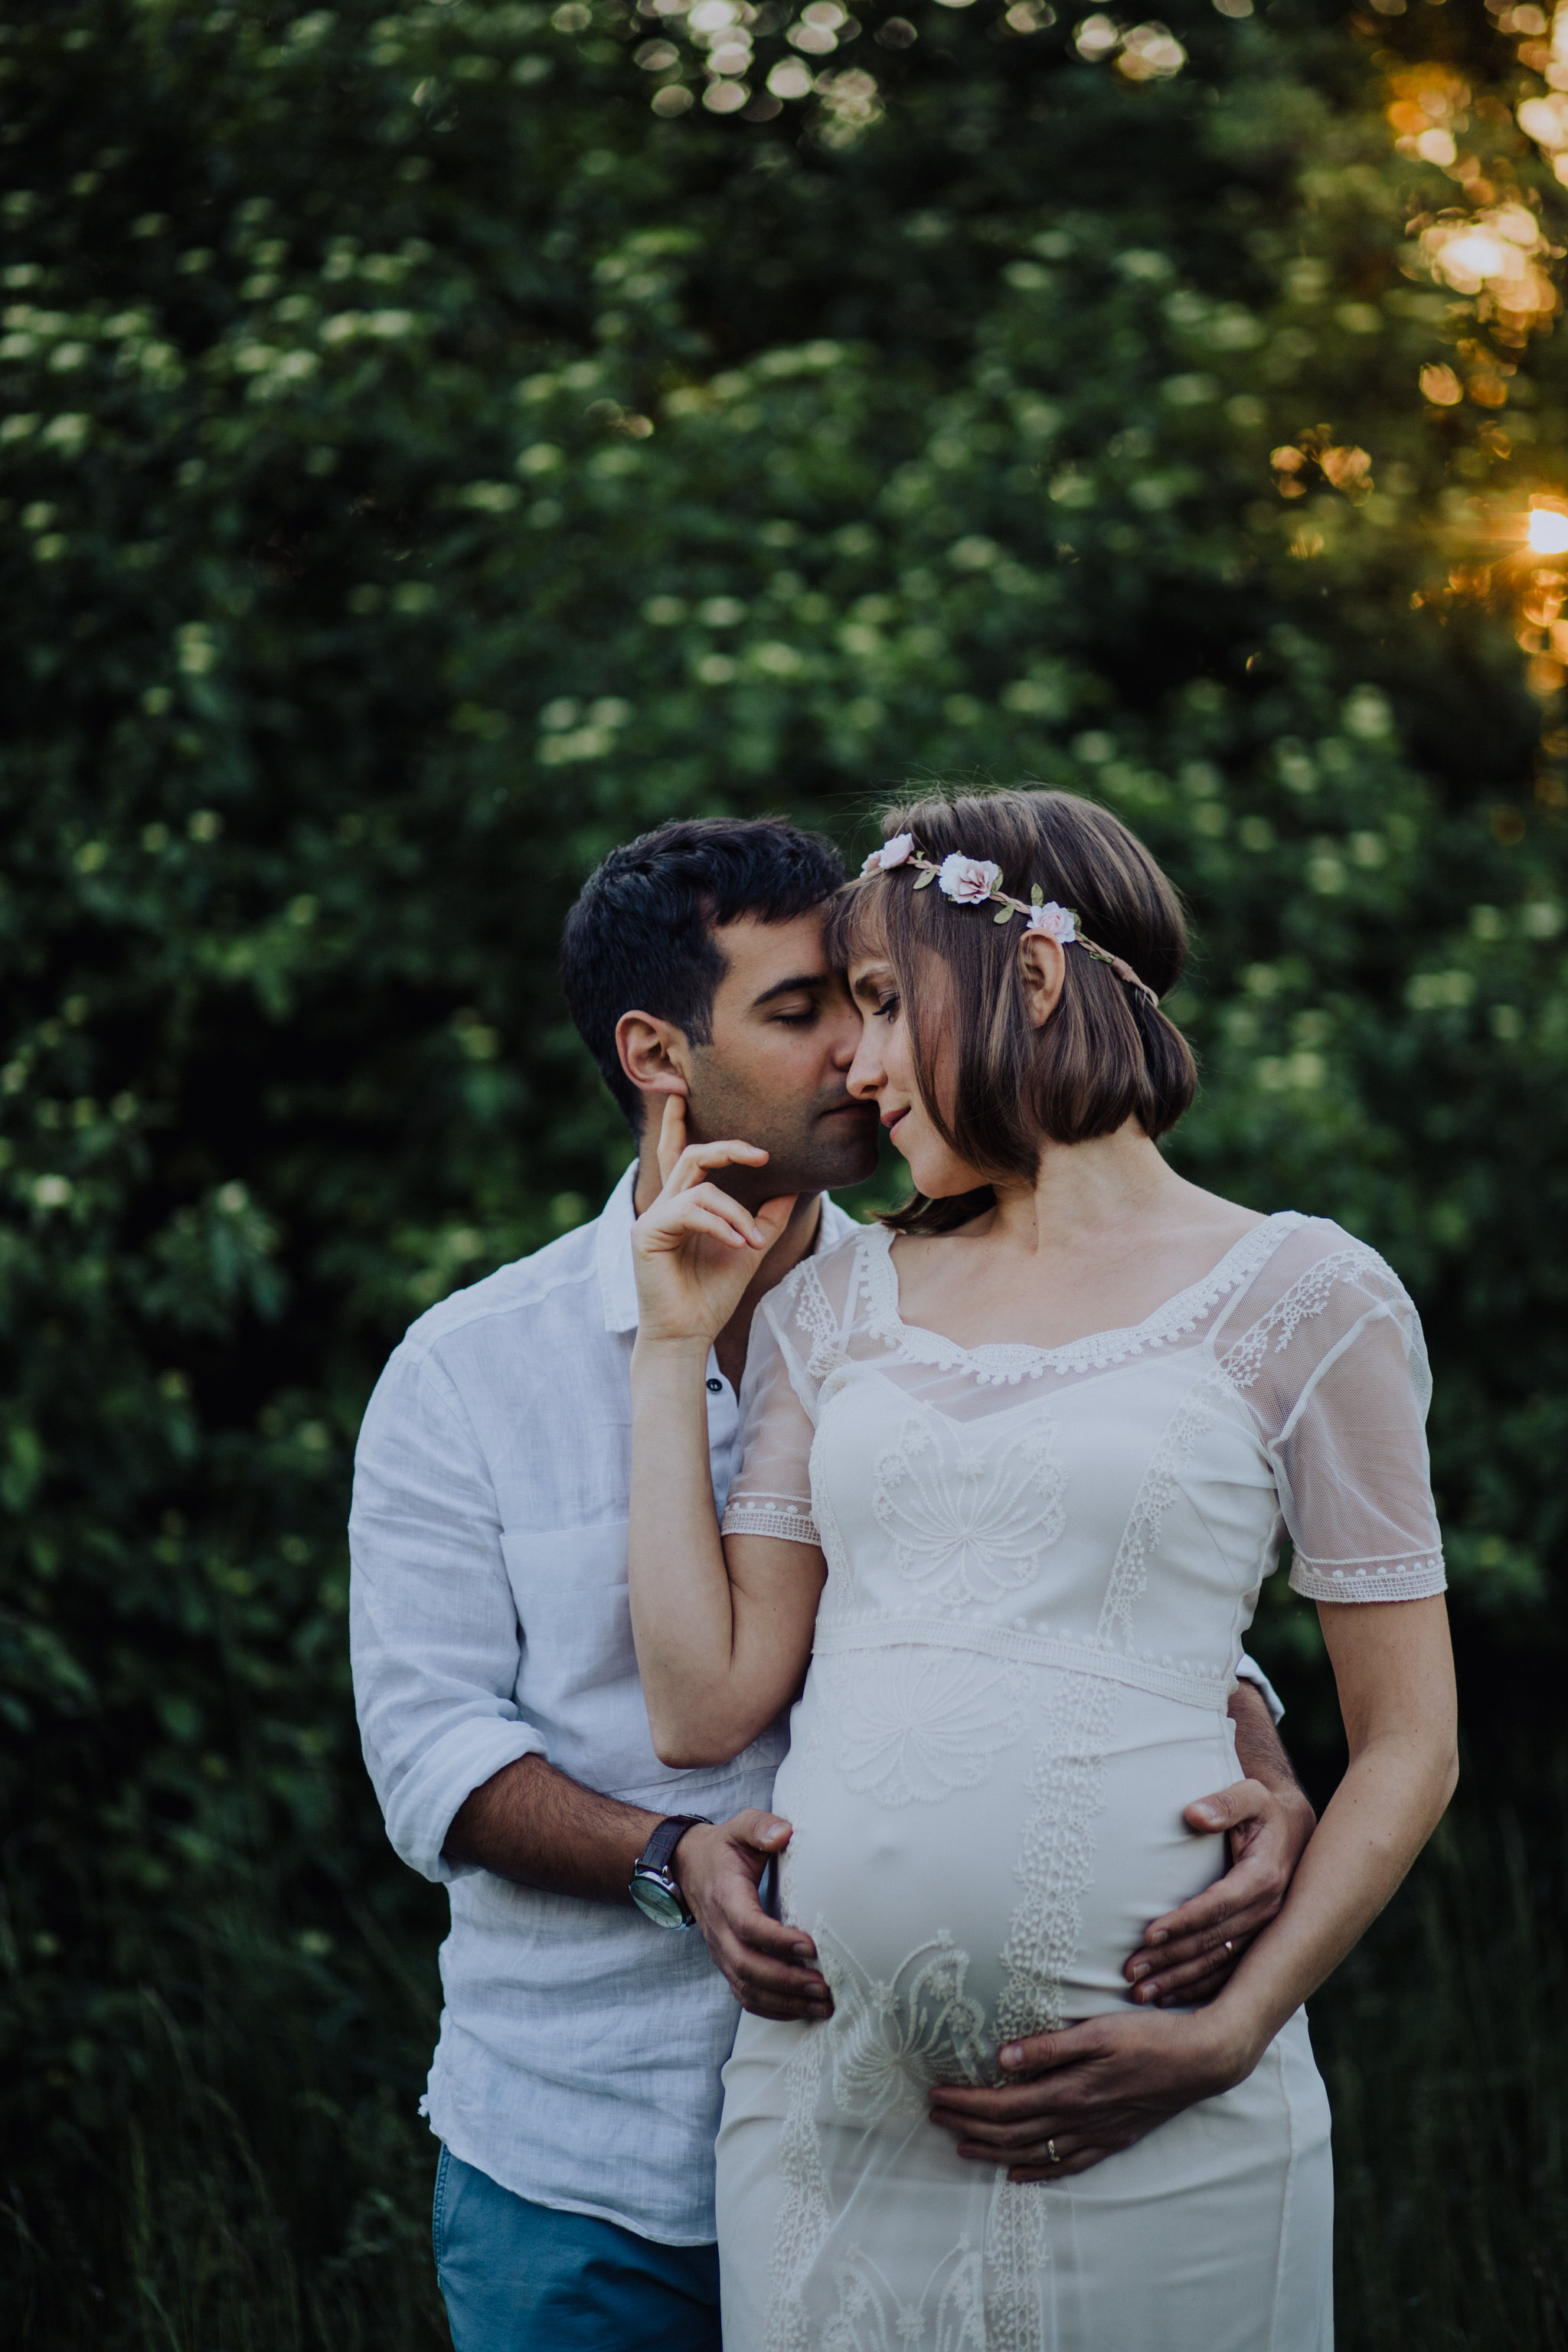 pregnancy sesion outdoors